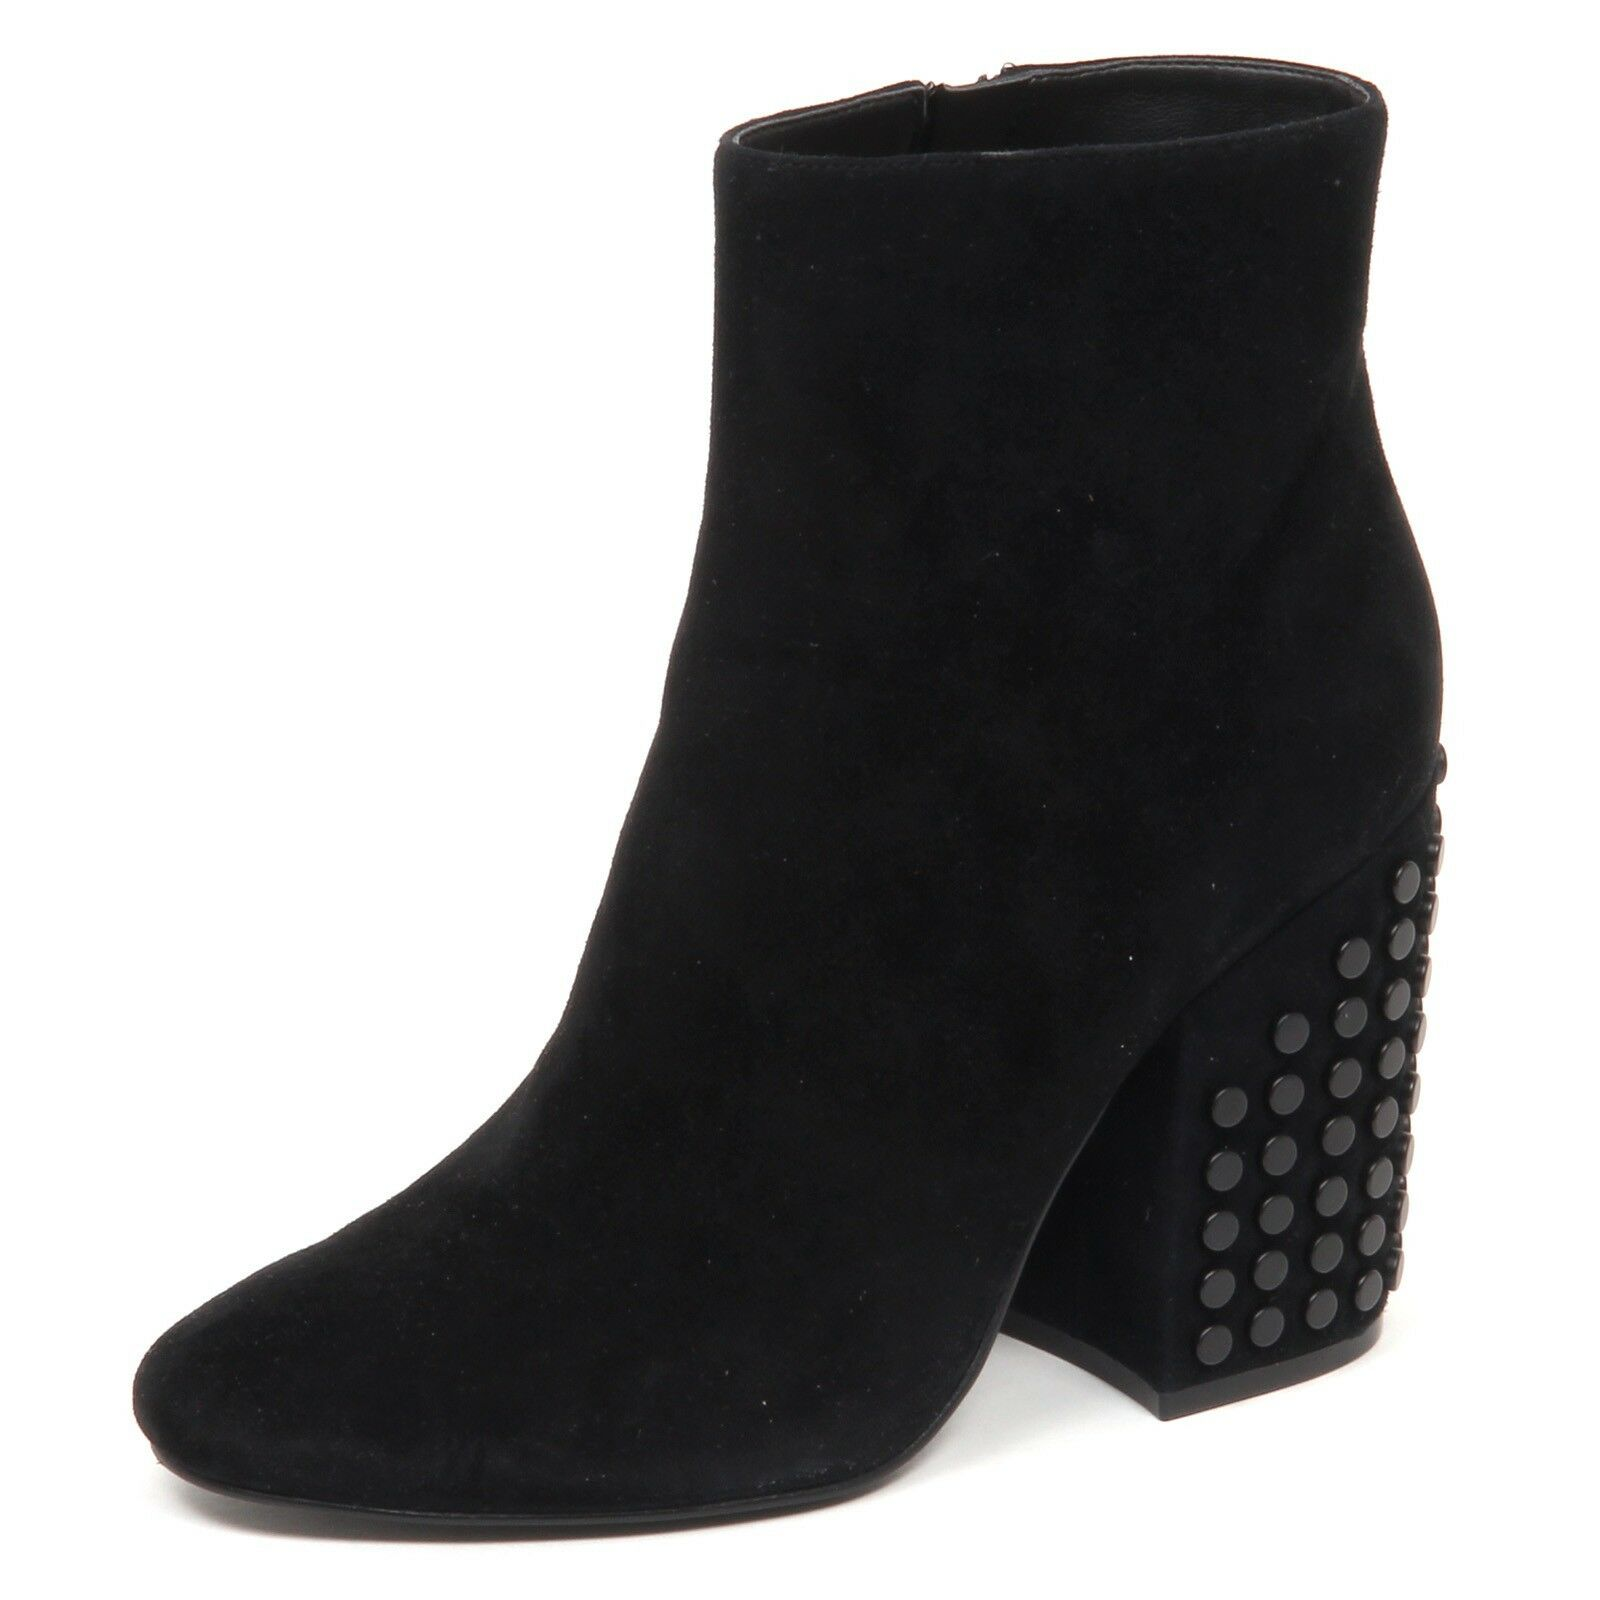 E0456 tronchetto donna nero KENDALL + KYLIE suede boot shoe woman